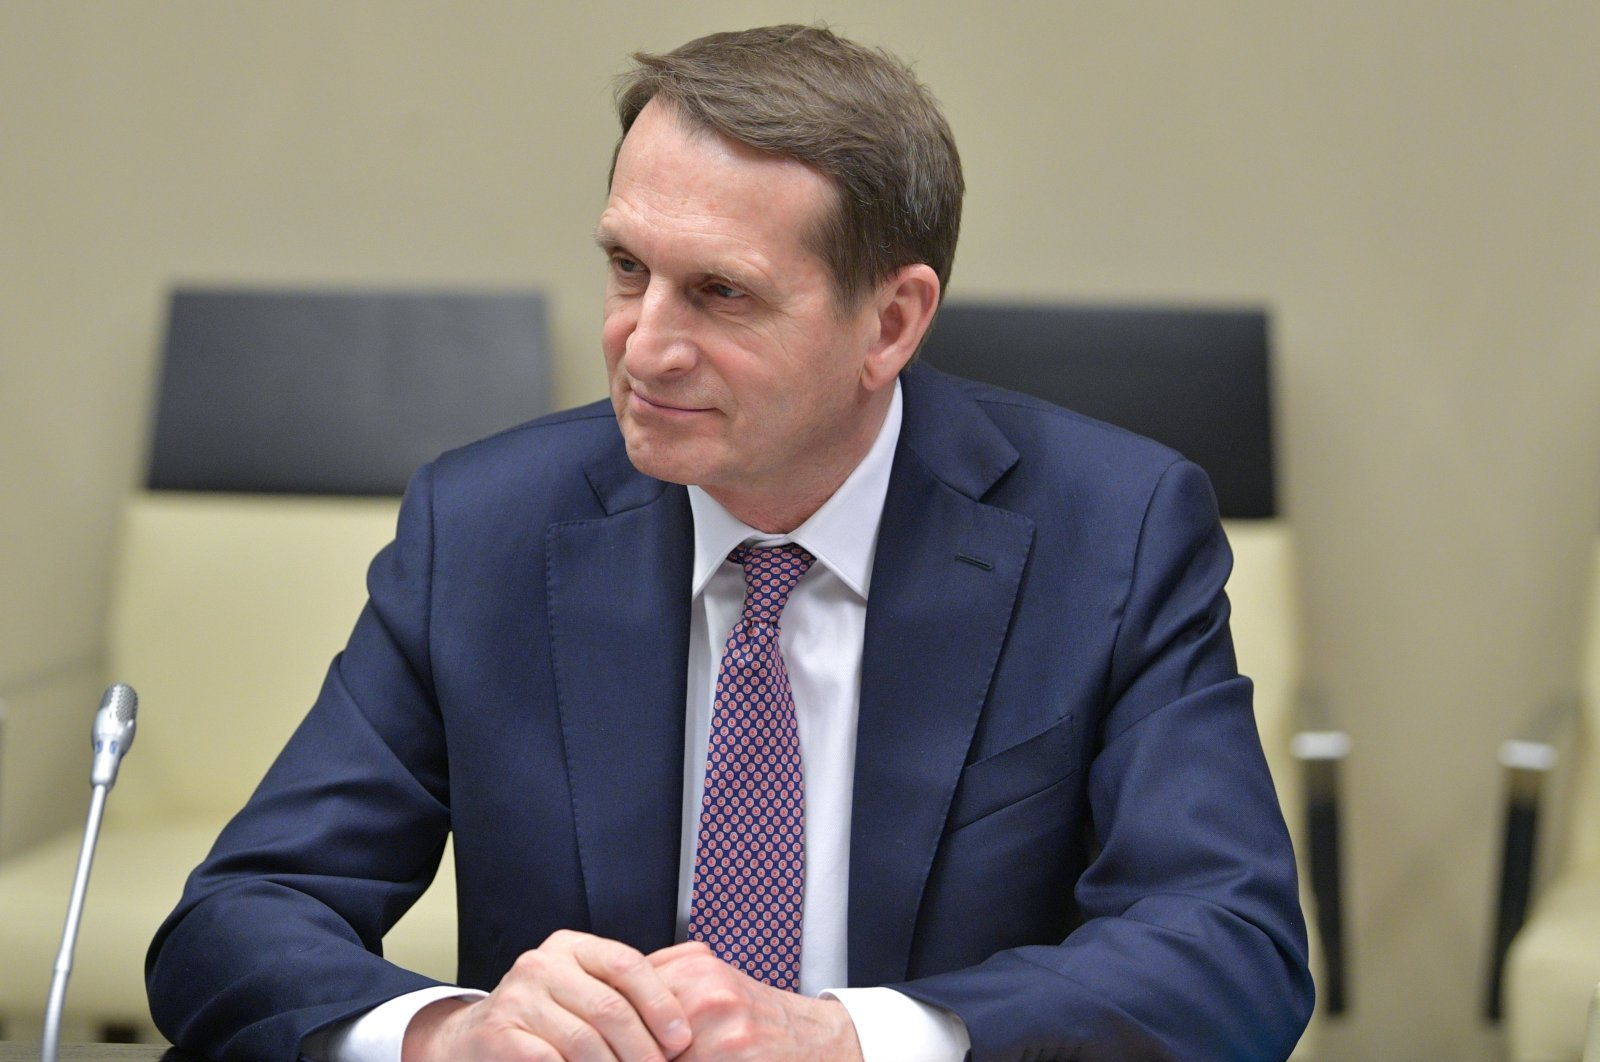 Sergei Naryshkin, head of the Russian Foreign Intelligence Service, attends a meeting with Russian President Vladimir Putin at the Novo-Ogaryovo residence outside Moscow, Russia, Feb. 21, 2020. (AP Photo)